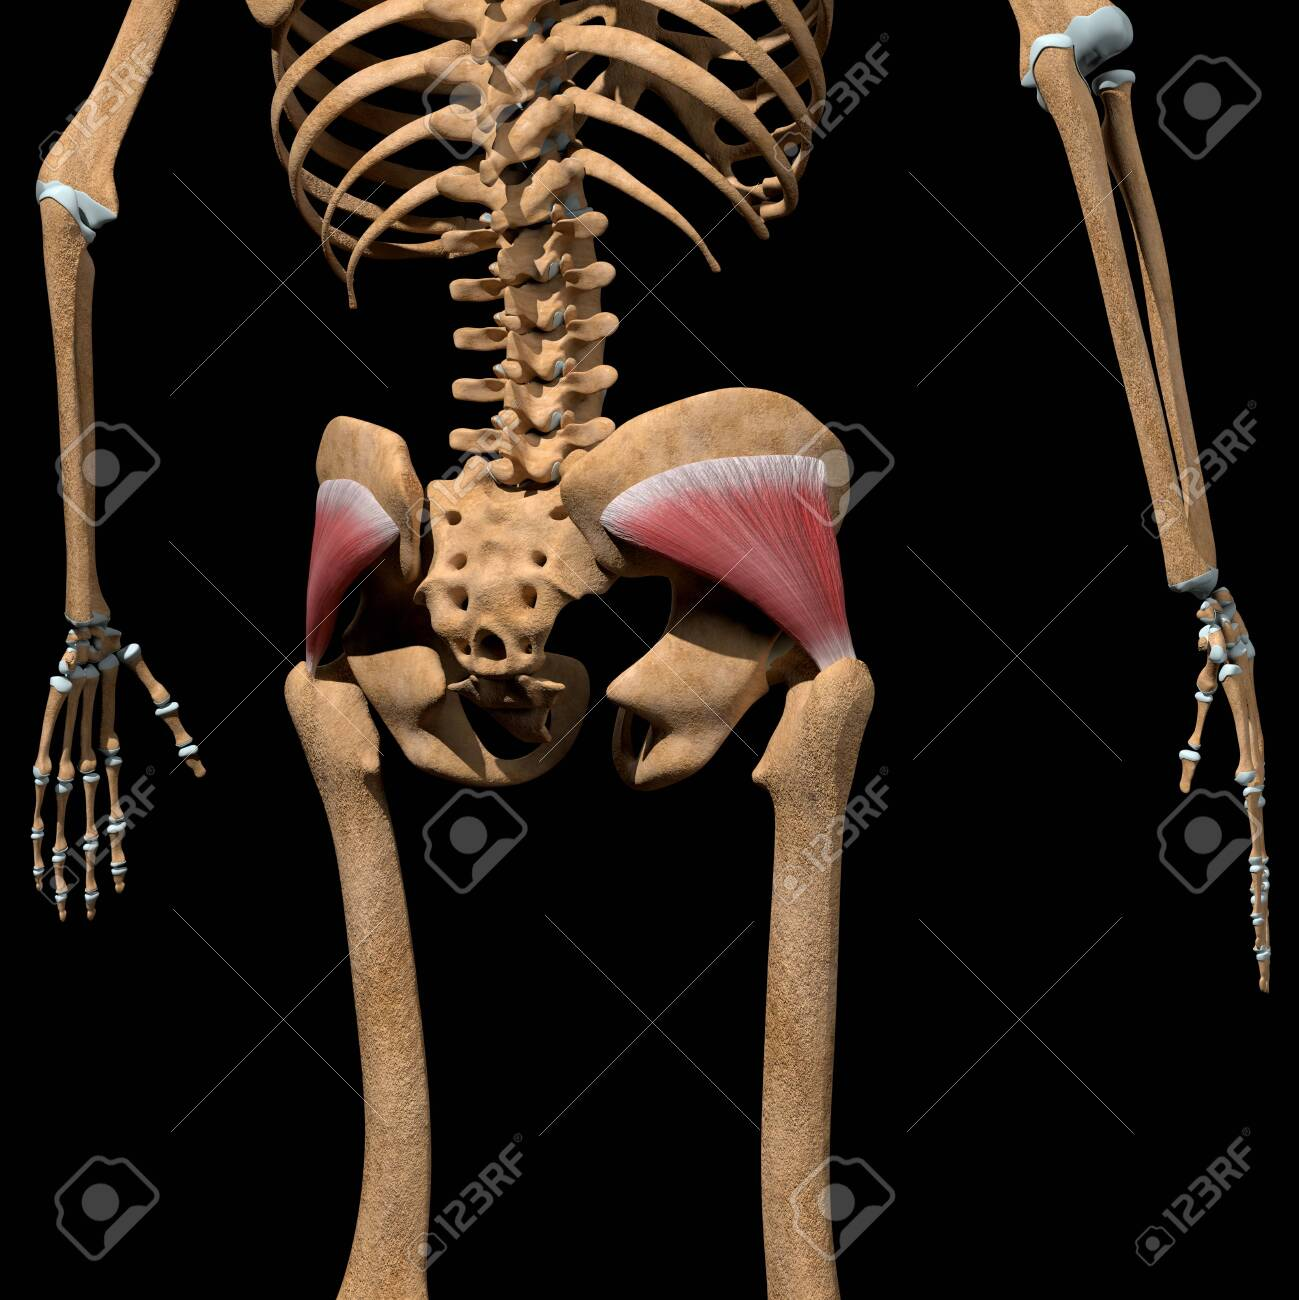 This 3d illustration shows the gluteus minimus muscles on skeleton - 142171662